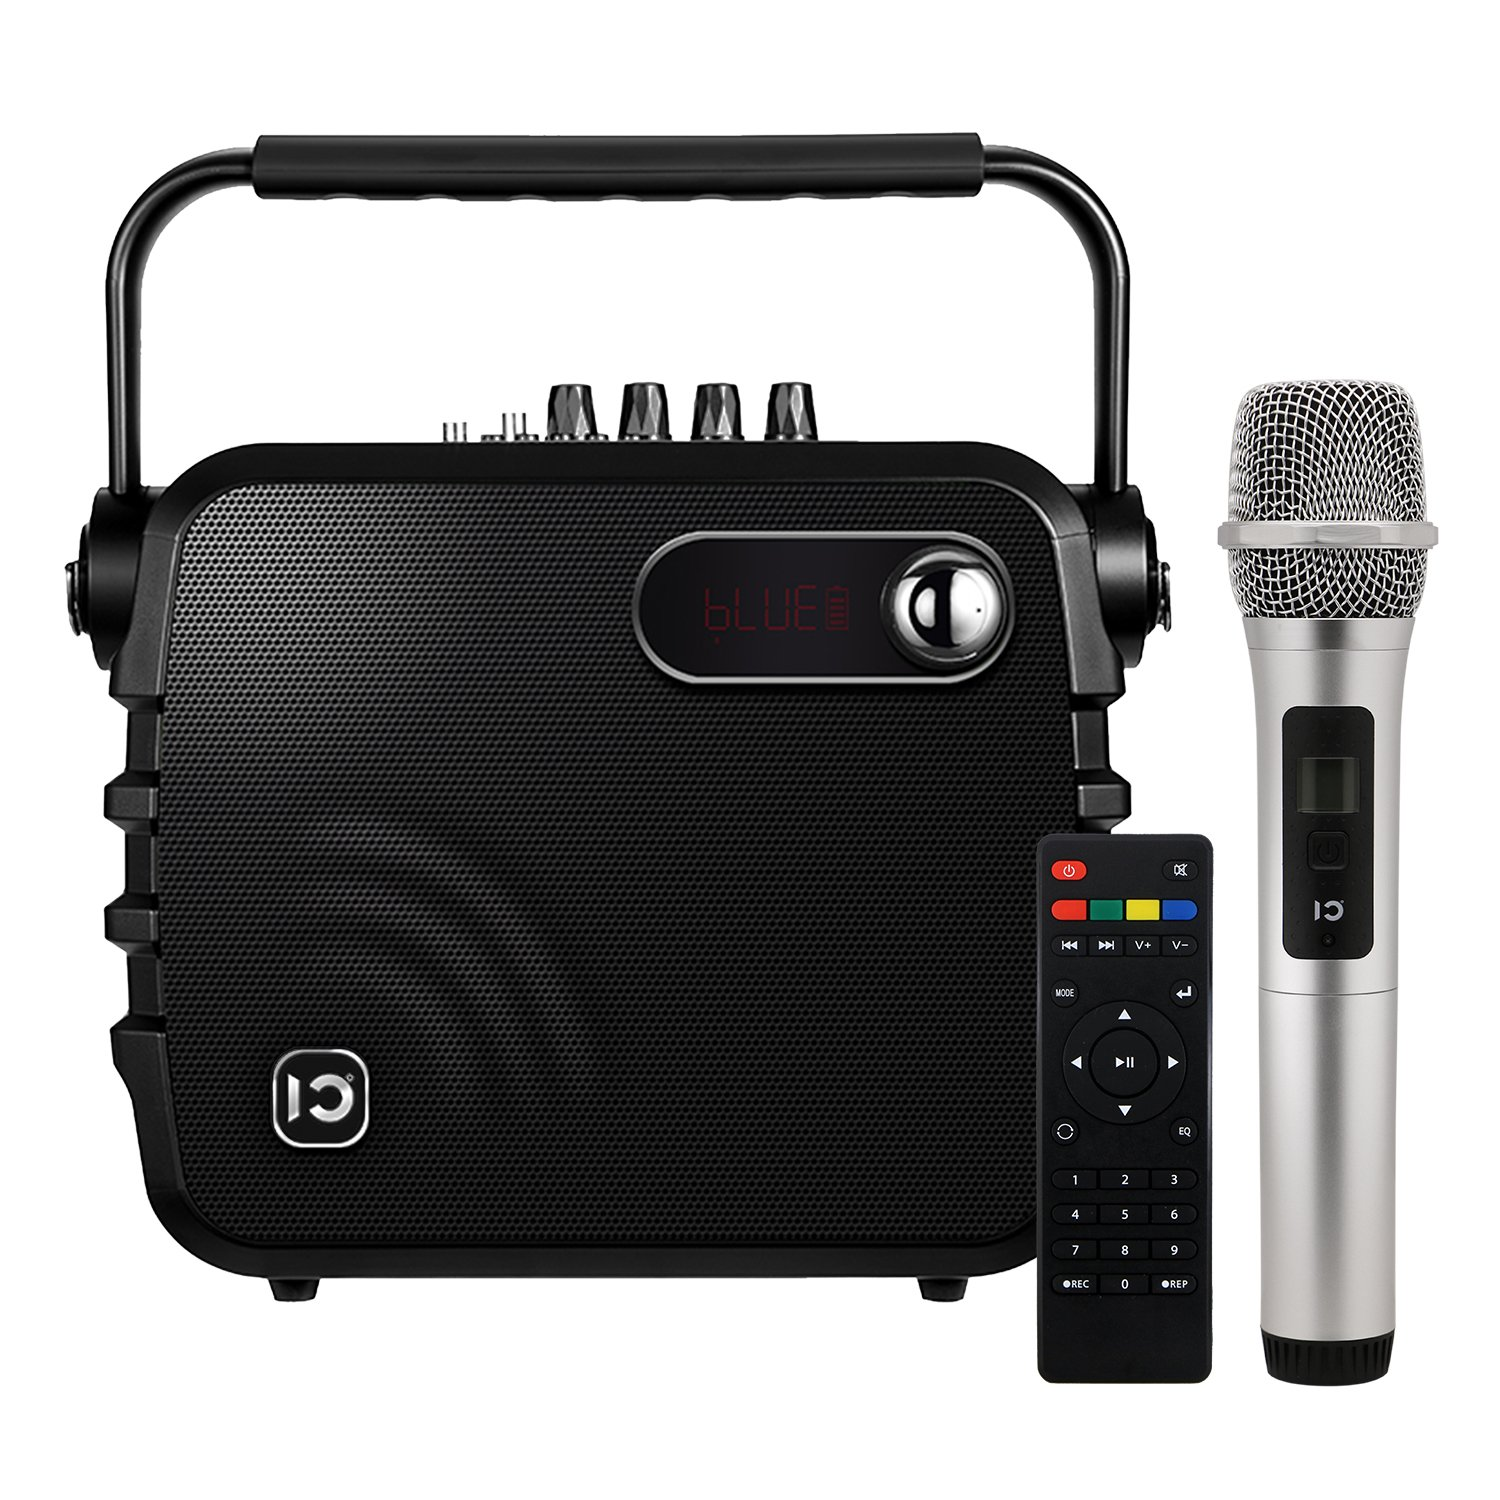 Voice Amplifier SHIDU K3 30 Watts Portable PA System with UHF Hand-held Microphone Wireless Bluetooth Speaker Built-in Rechargeable Battery & Remote Control for Home and Outdoors, Black